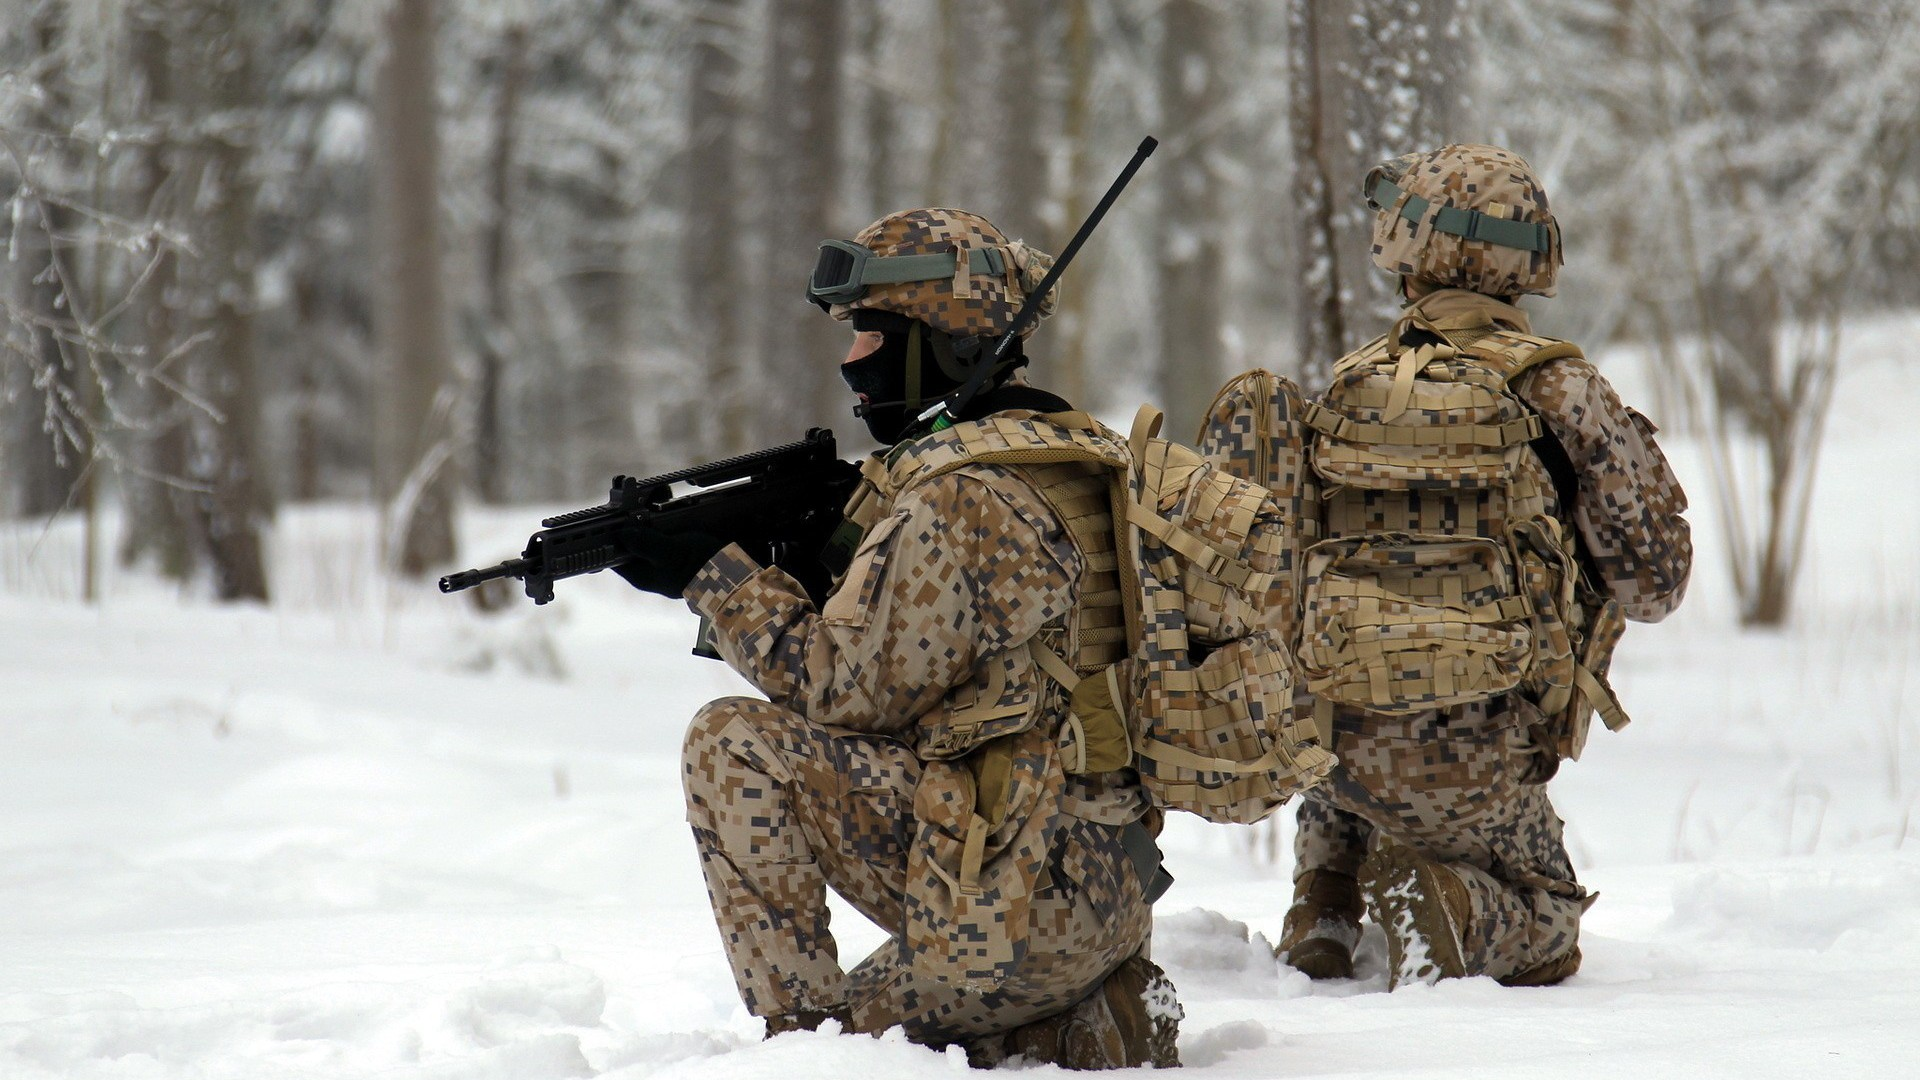 Soldiers snow military wallpaper 8555 pc en - Military wallpaper army ...